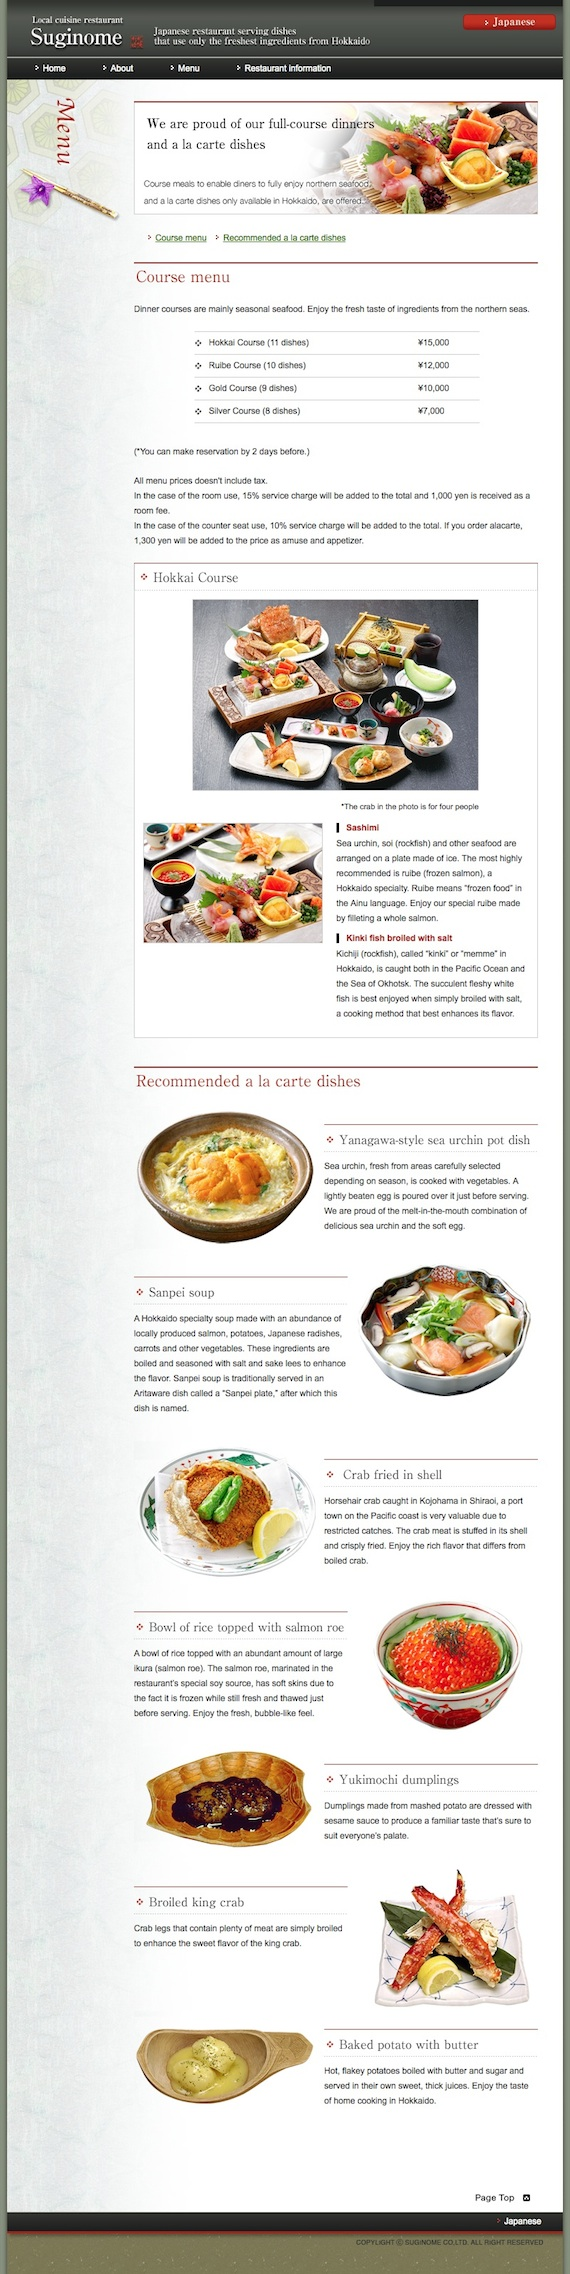 Japanese restaurant serving dishes that use only the freshest ingredients from Hokkaido. Course meals to enable diners to fully enjoy northern seafood, and a la carte dishes only available in Hokkaido, are offered.